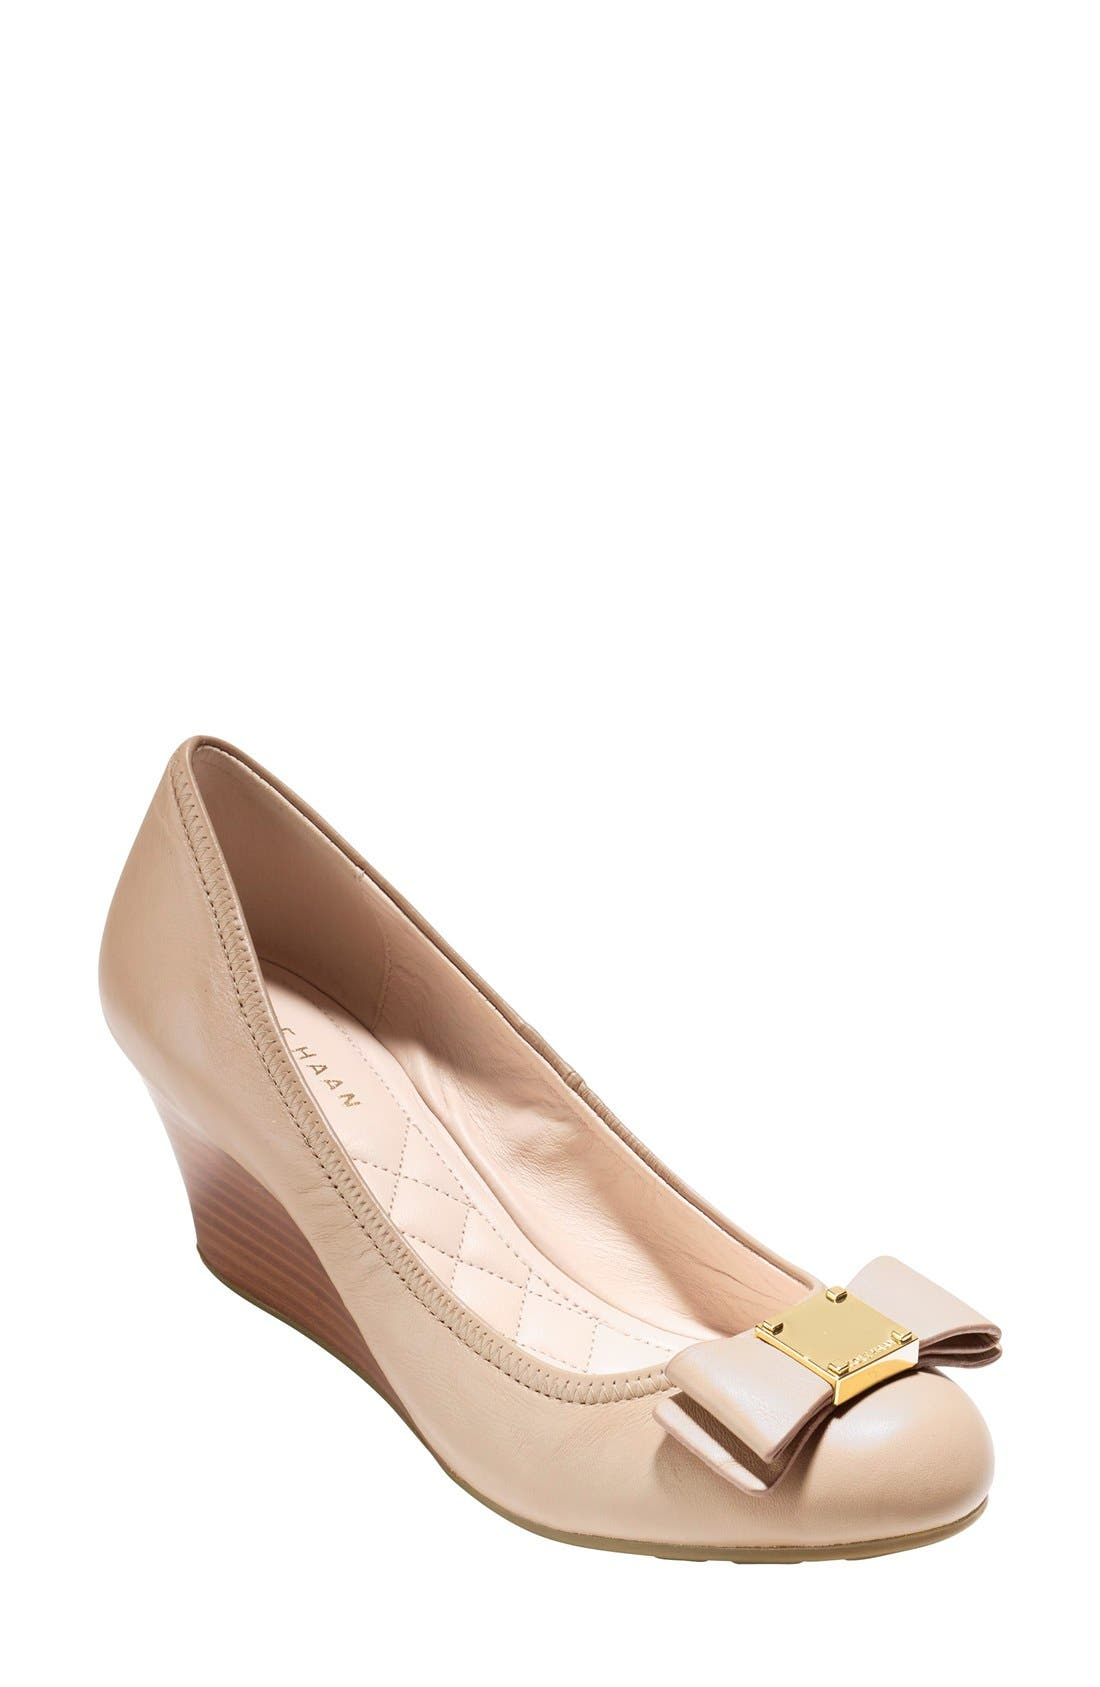 Womens Kelly Court Heel - Nude Emerge